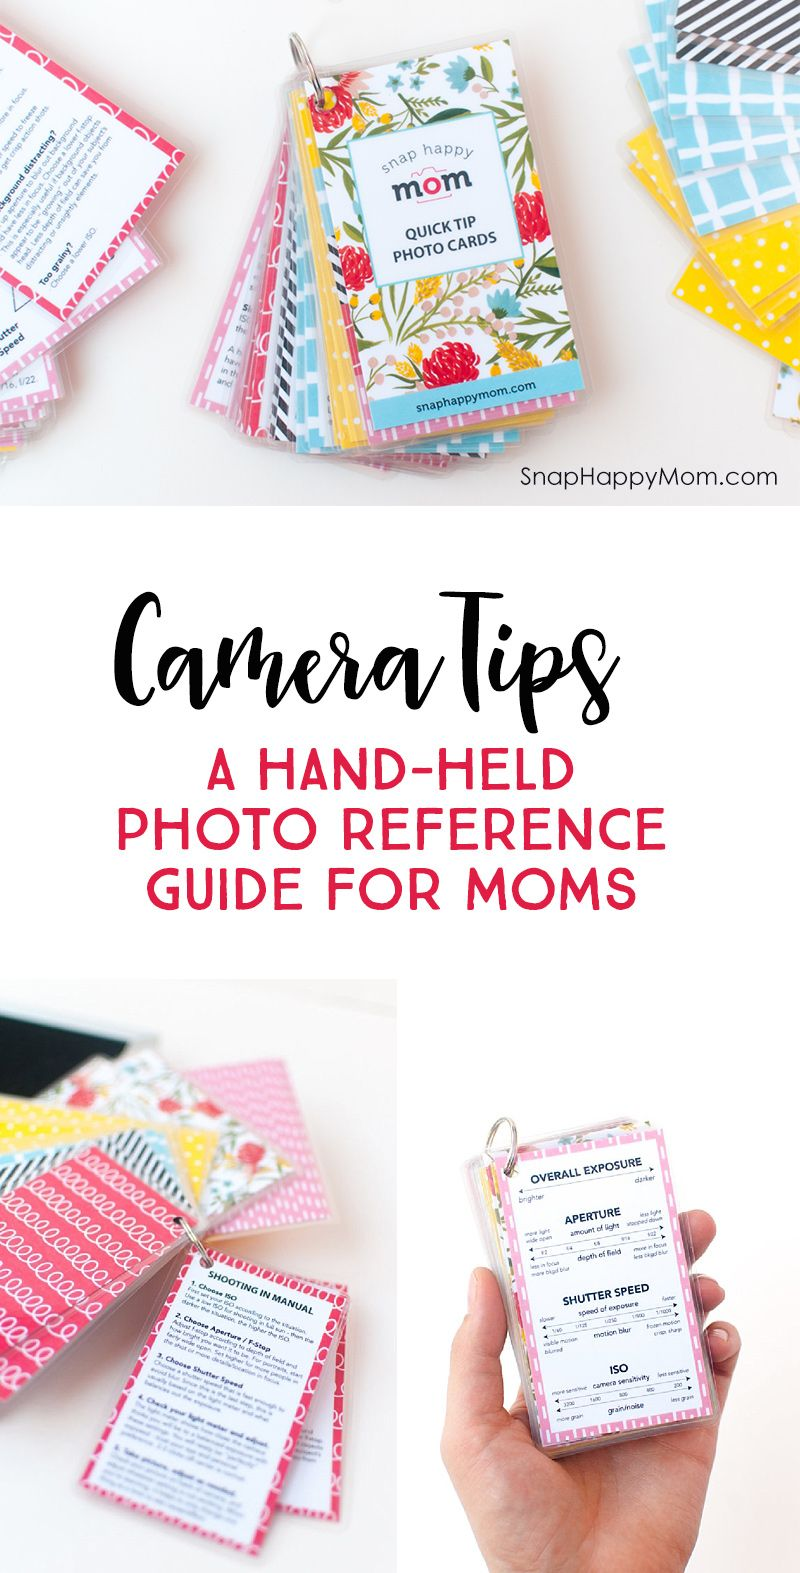 Camera Tips: A hand-held photo reference guide for moms *Love this hand tool. Small enough to keep it in your pocket or camera bag. So helpful for DSLR moms.